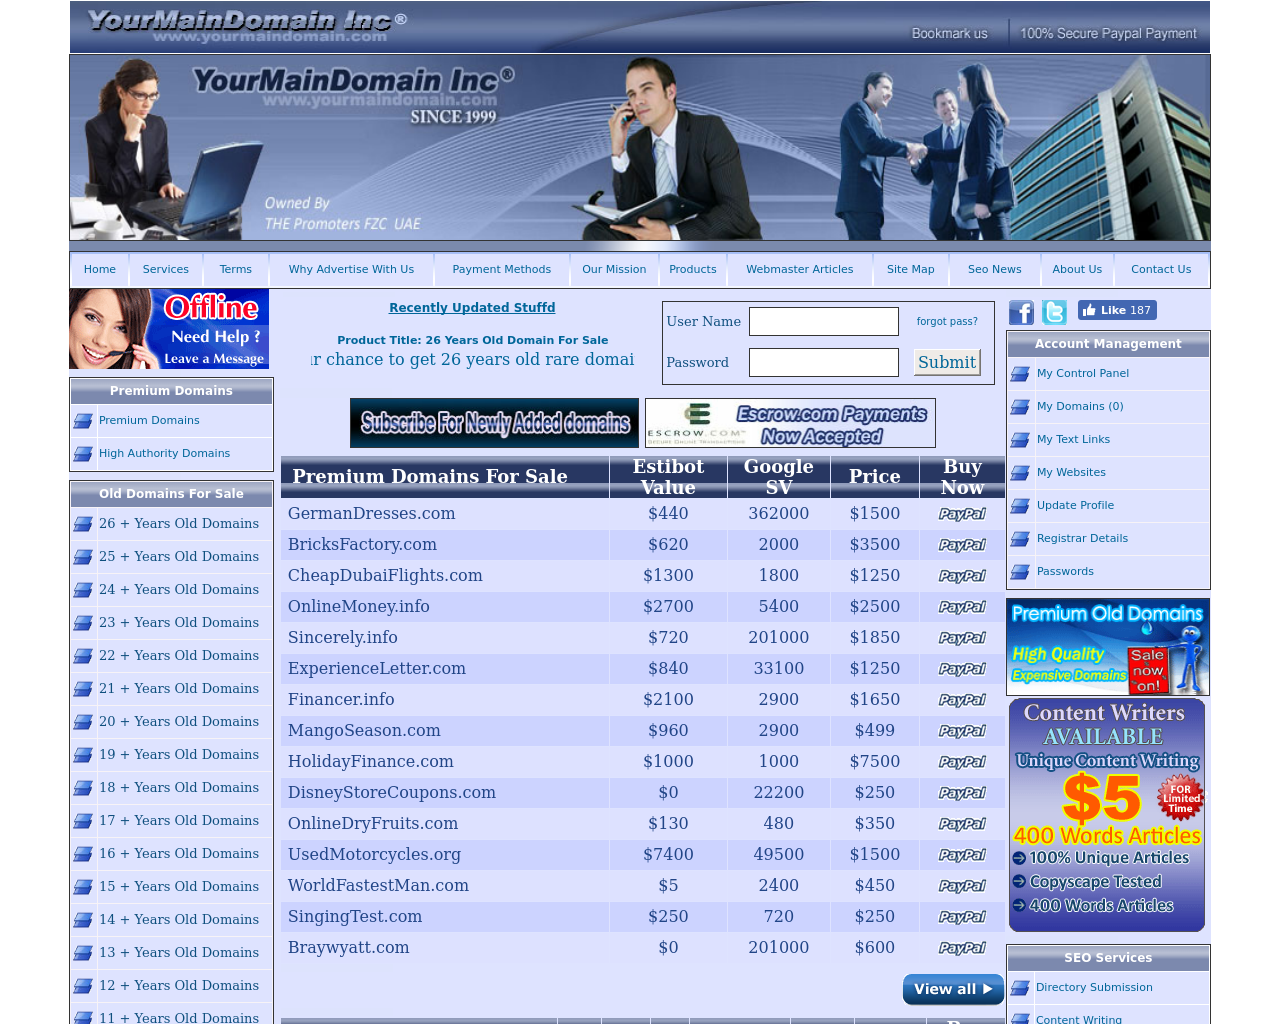 Your-Main-Domain-Inc-Advertising-Reviews-Pricing